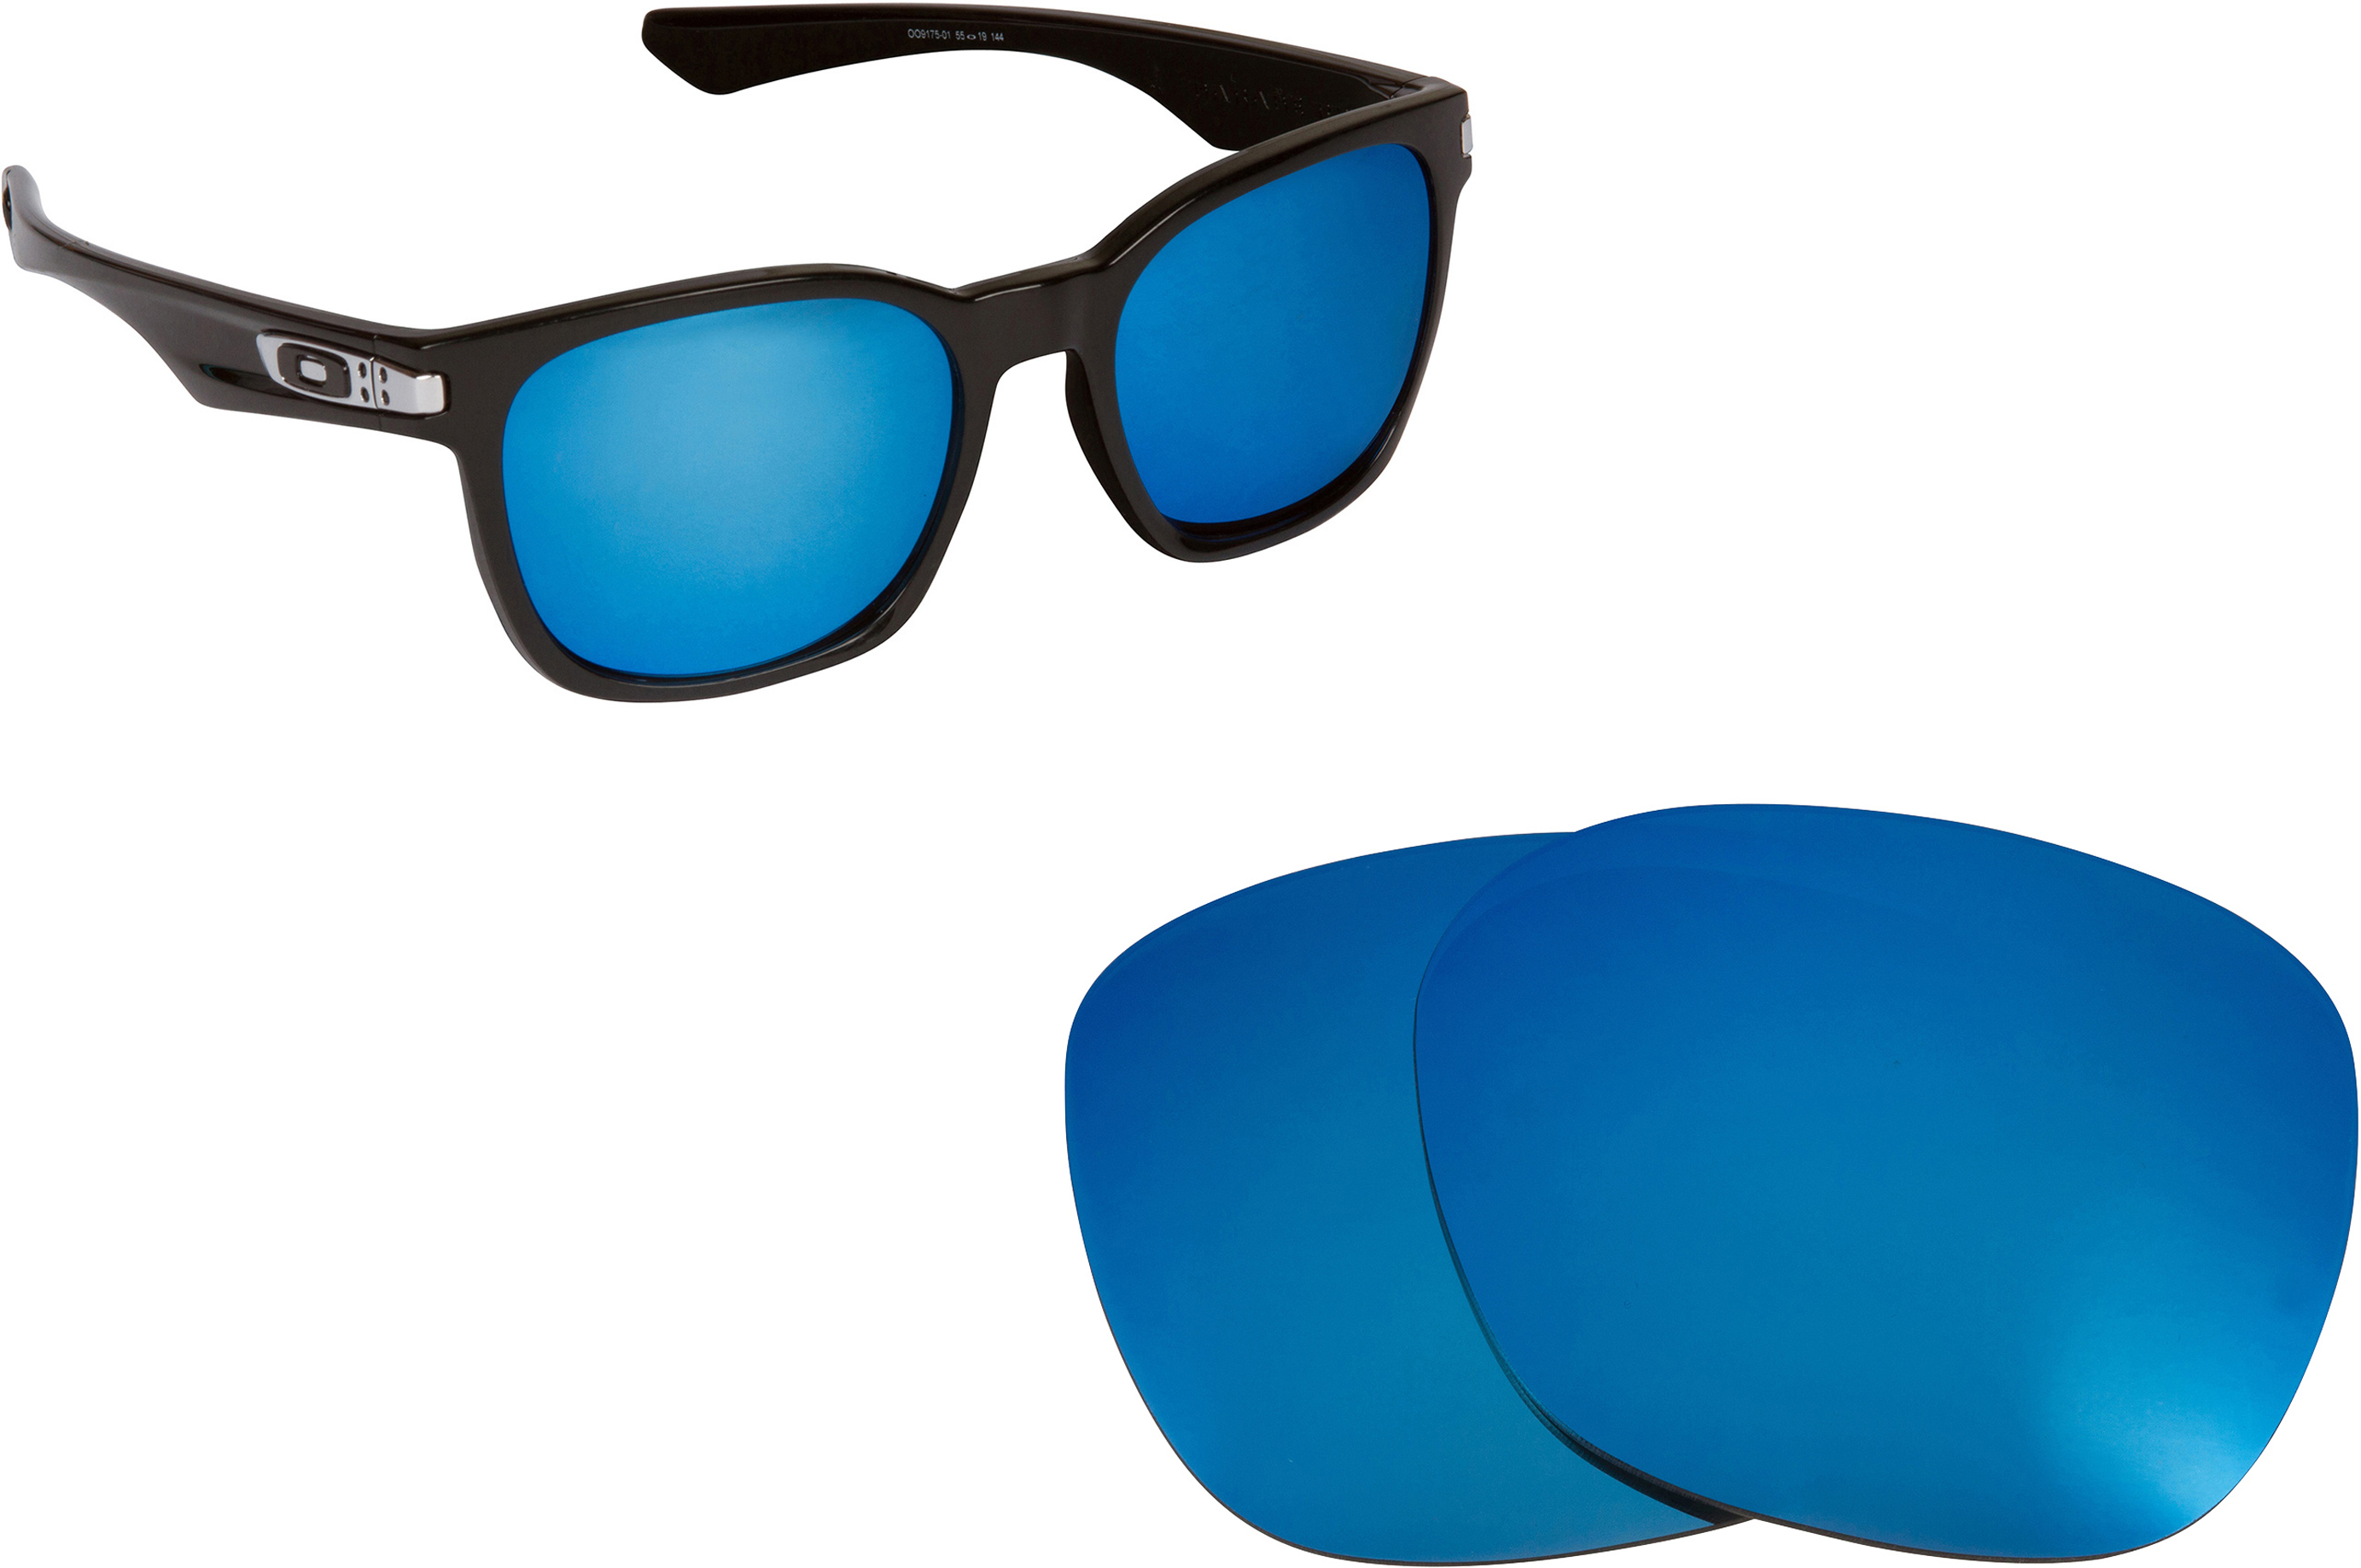 24d60211ab Details about Garage Rock Replacement Lenses by SEEK OPTICS to fit OAKLEY  Sunglasses